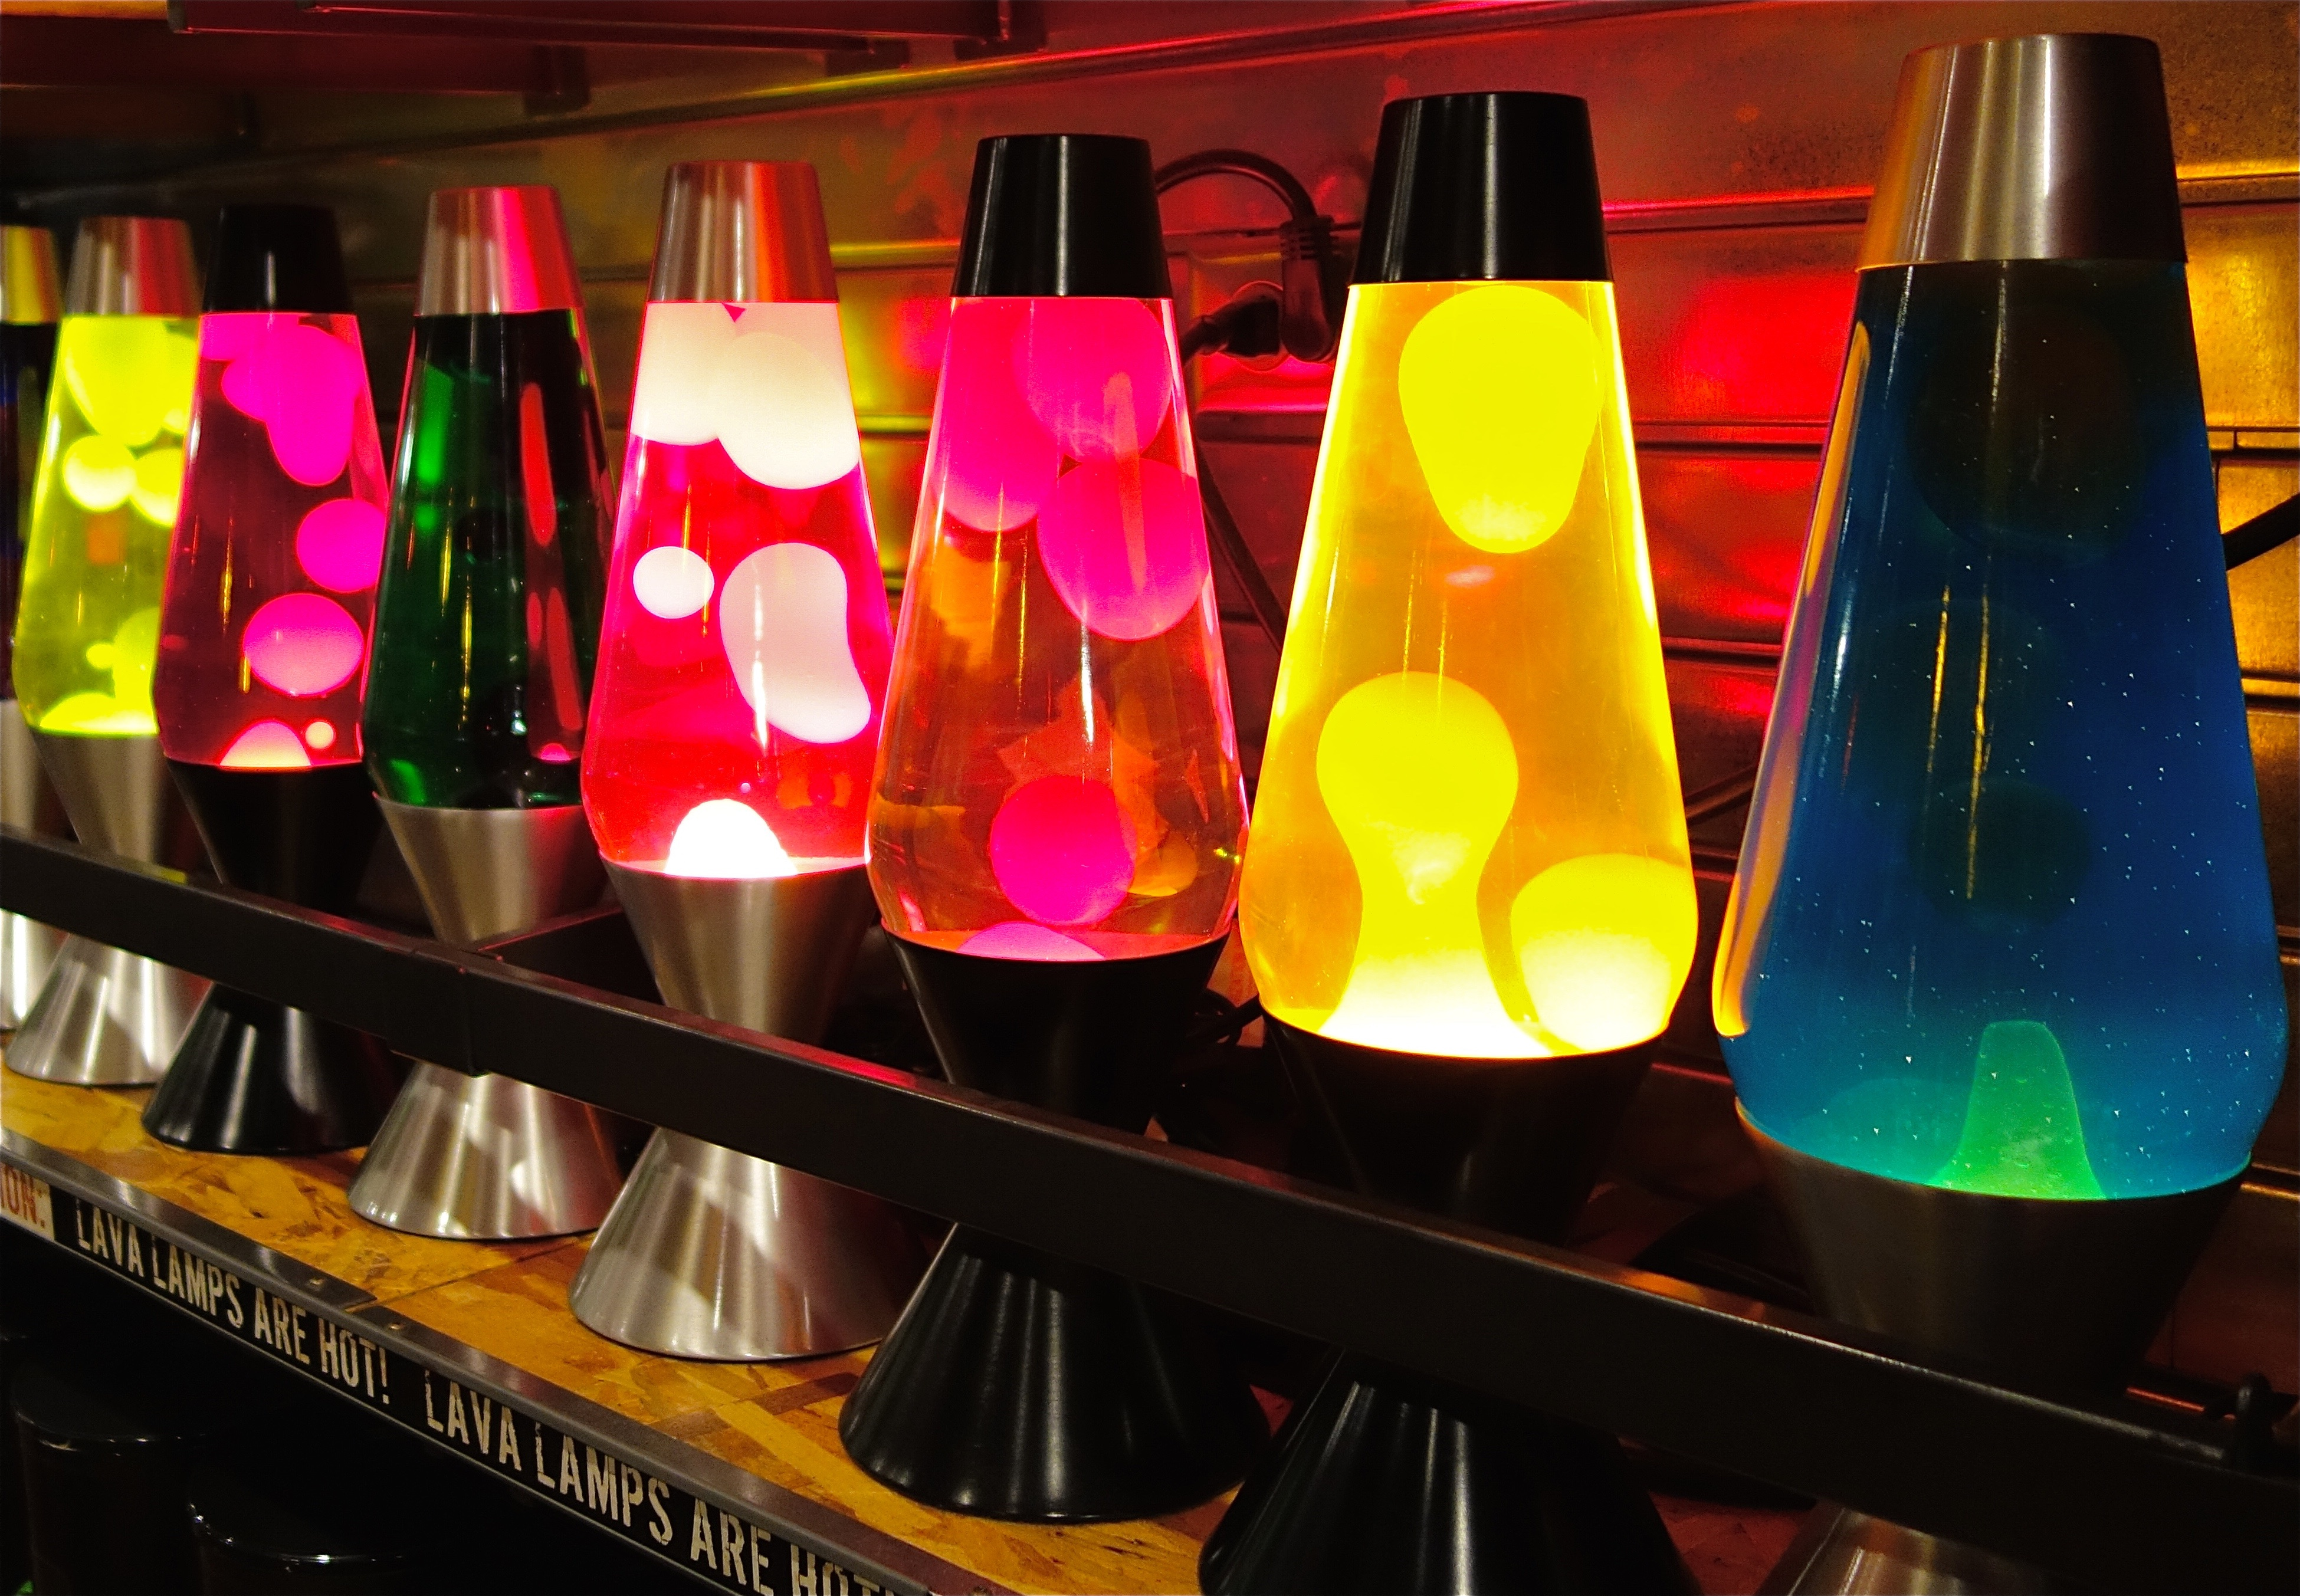 File:Lava lamps (16136876840).jpg - Wikimedia Commons